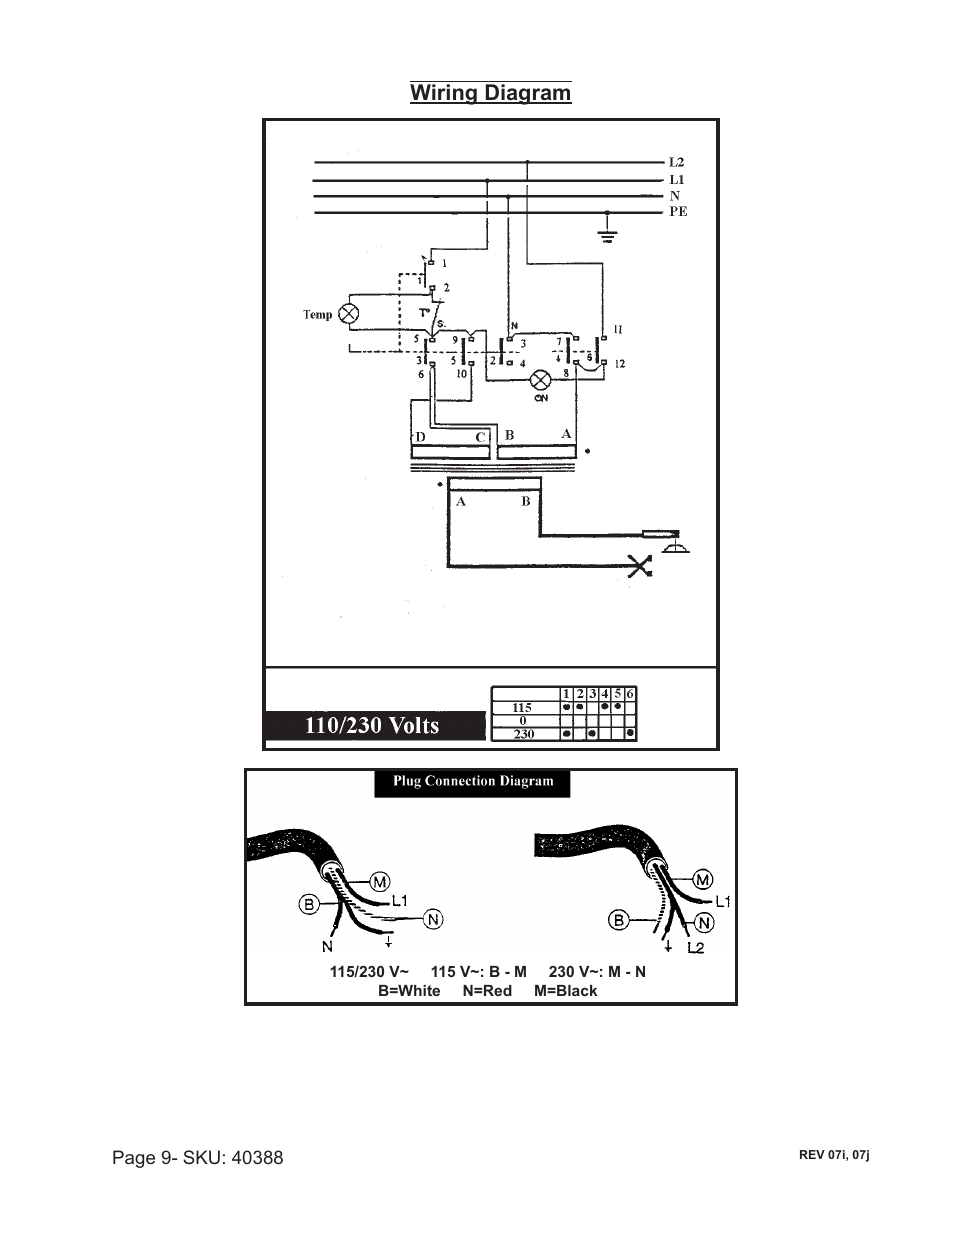 Wiring       diagram      Chicago Electric 40388    User    Manual   Page